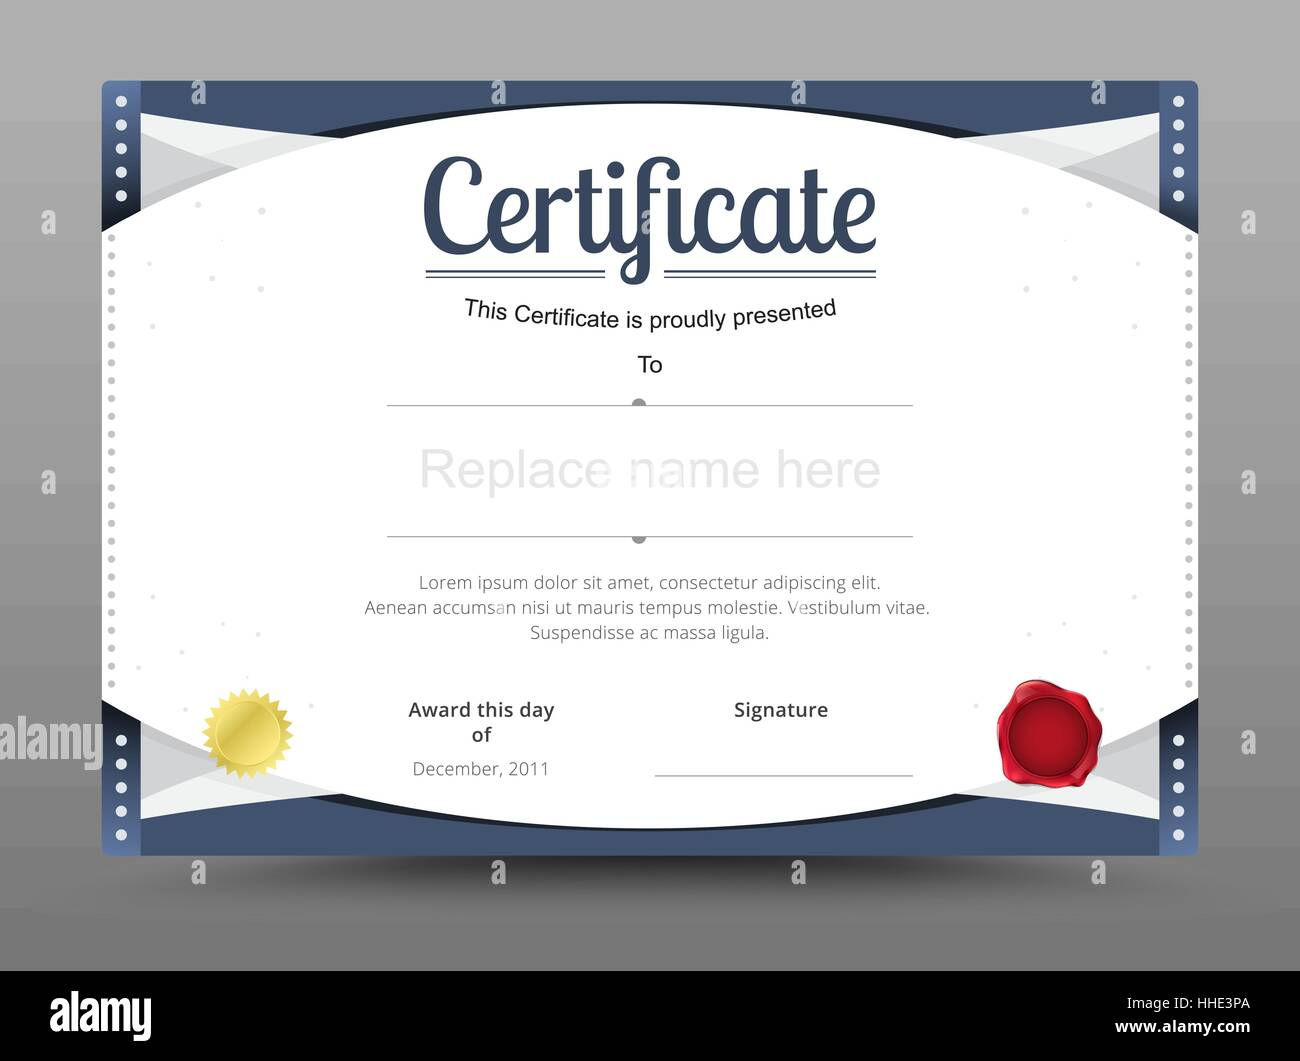 Elegant certificate template business certificate formal theme elegant certificate template business certificate formal theme vector illustration cheaphphosting